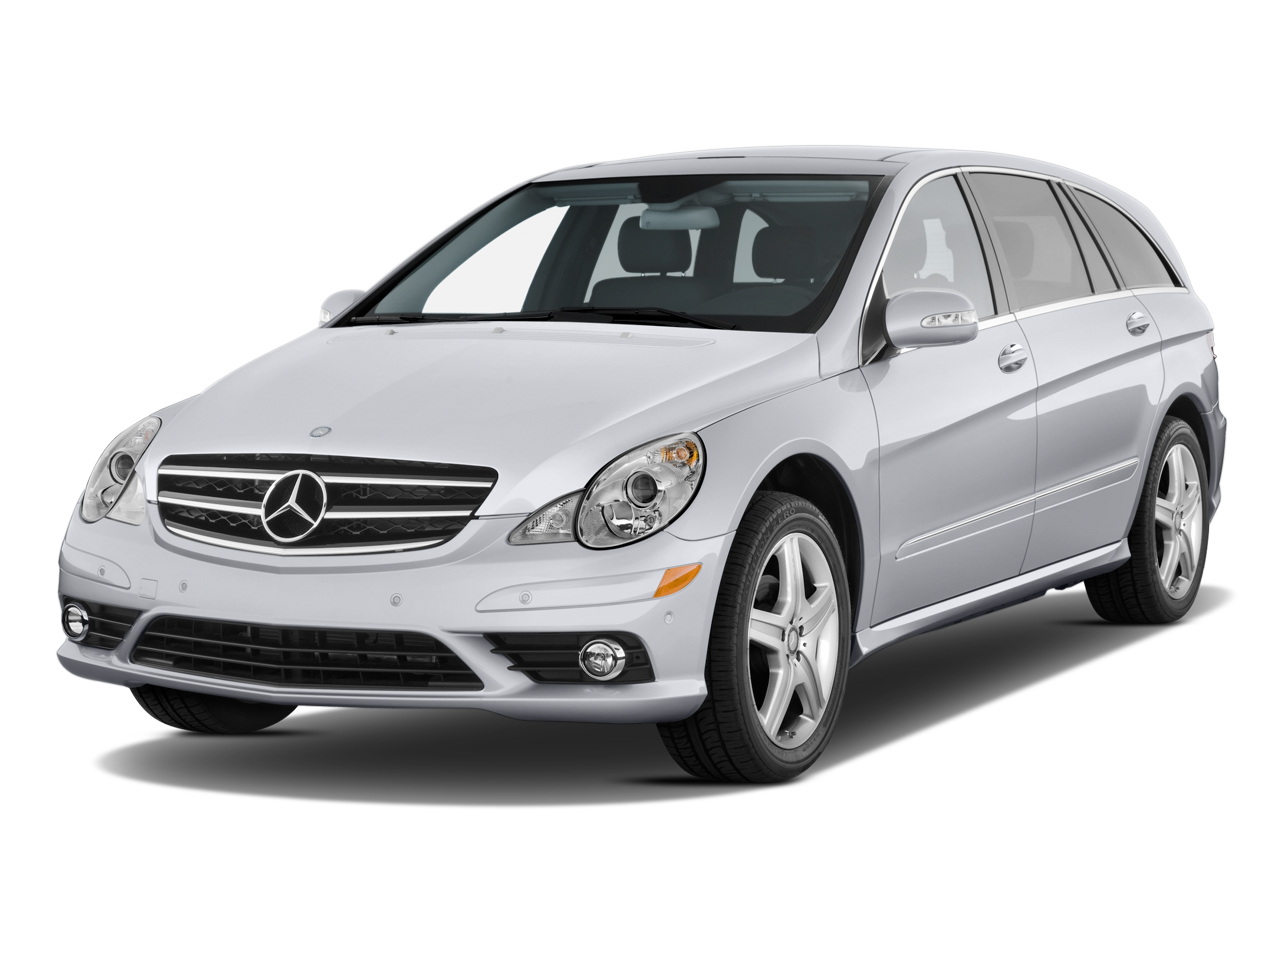 2010 mercedes benz r class review ratings specs prices for Mercedes benz connect